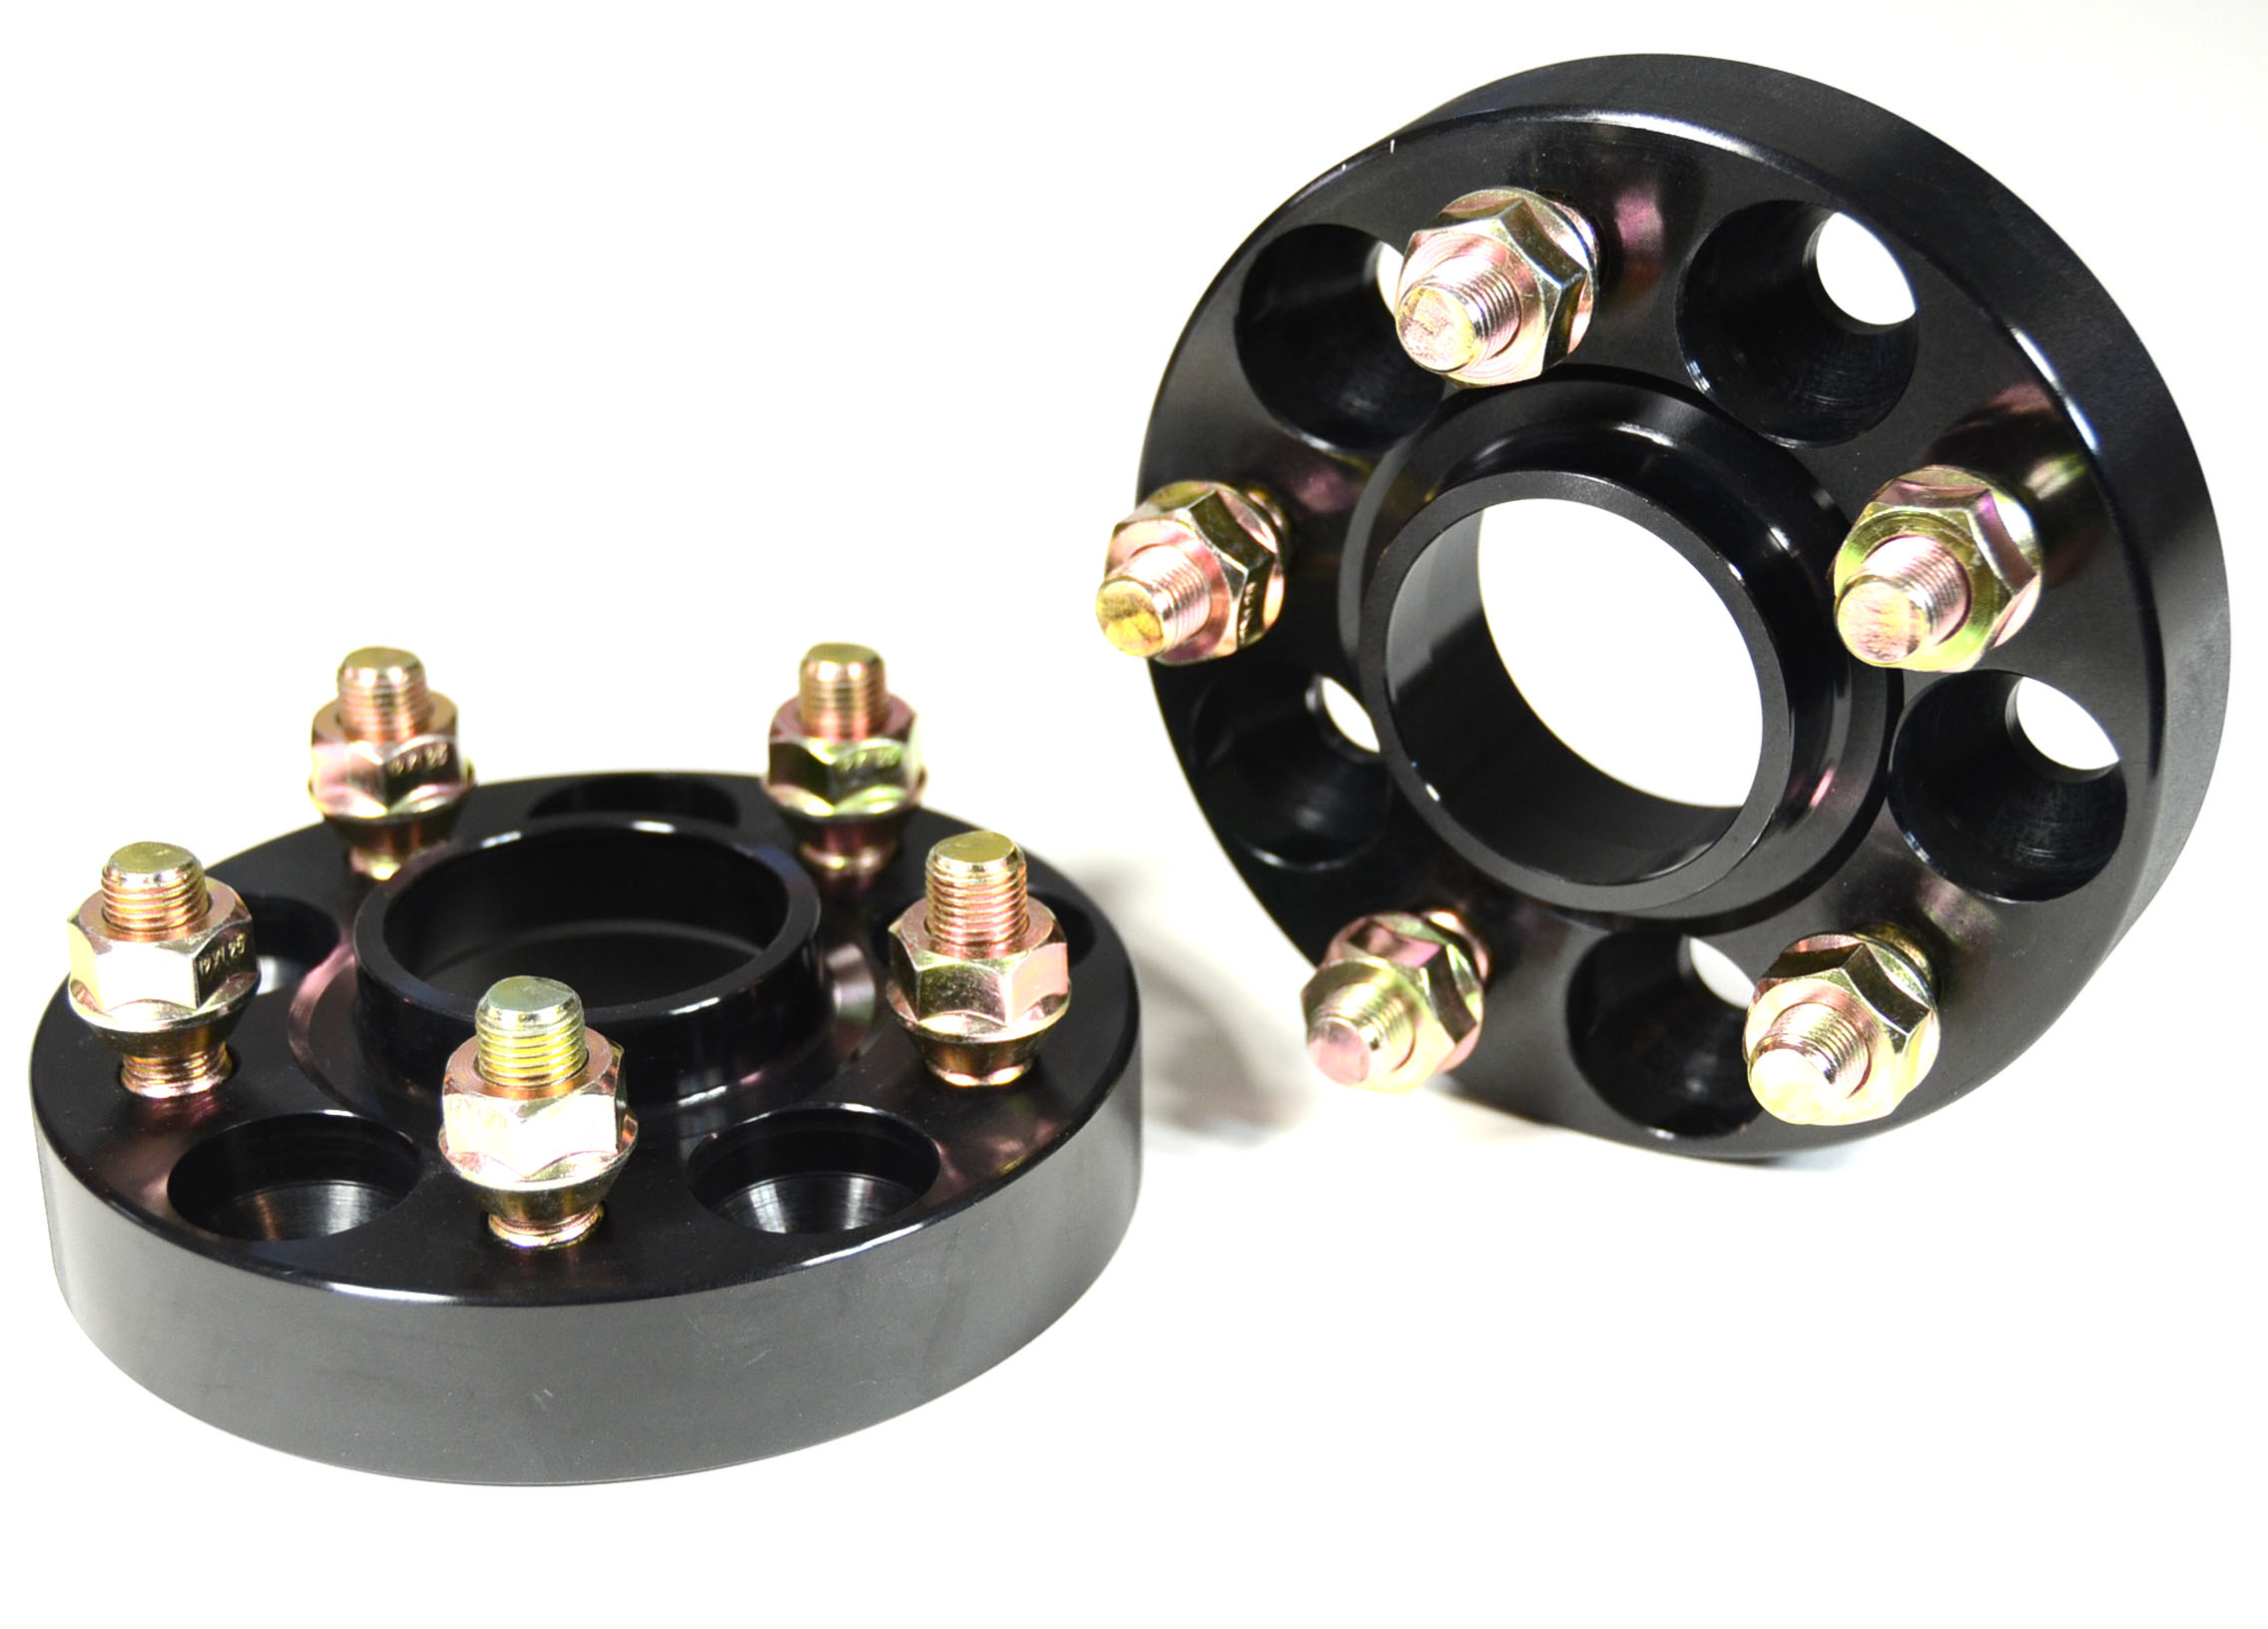 25mm Hubcentric Wheel Spacers Adapter Fits Saab With Nuts M12x1 25 M V Project Vprojectusa Com